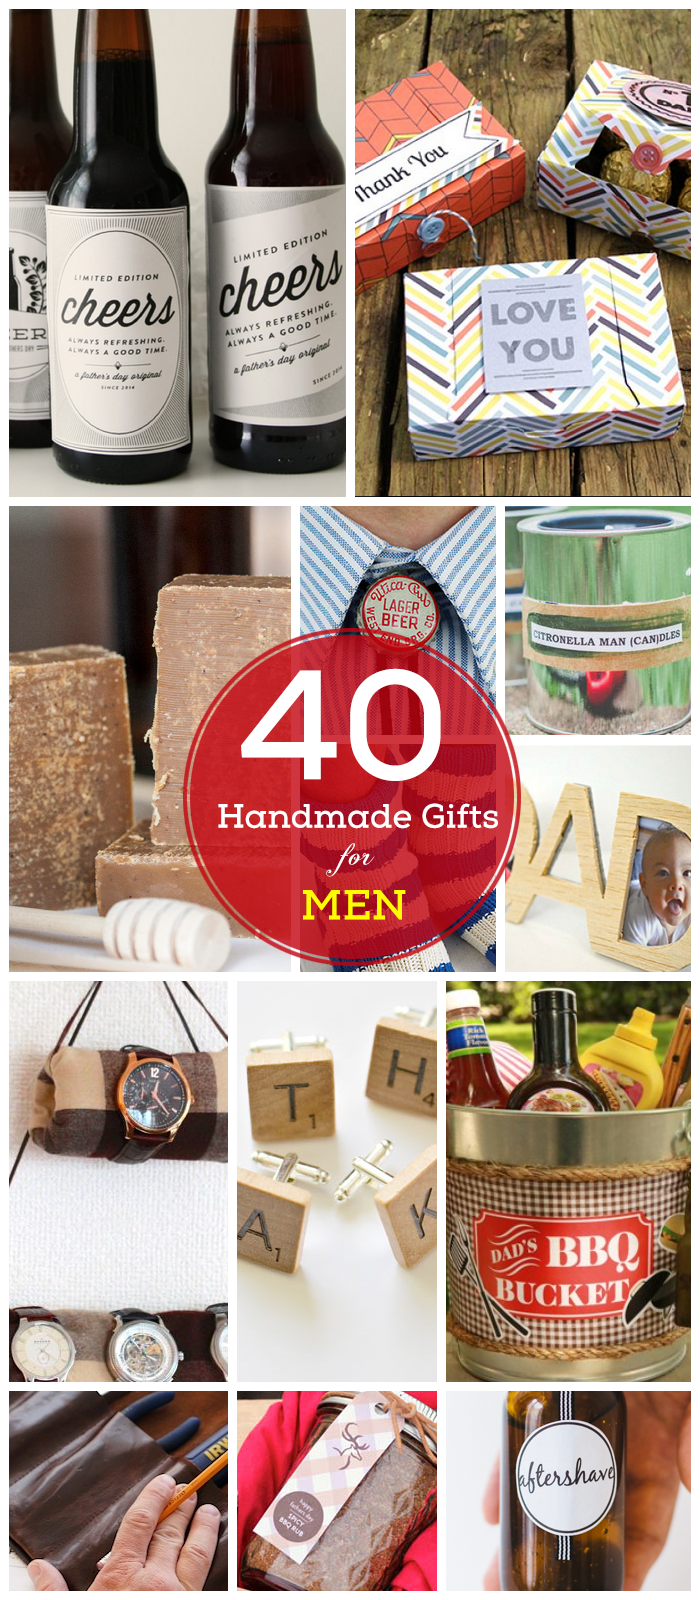 18 diy fathers day gift ideas click for tutorials handmade gifts for men - Cheap Christmas Gifts For Dad